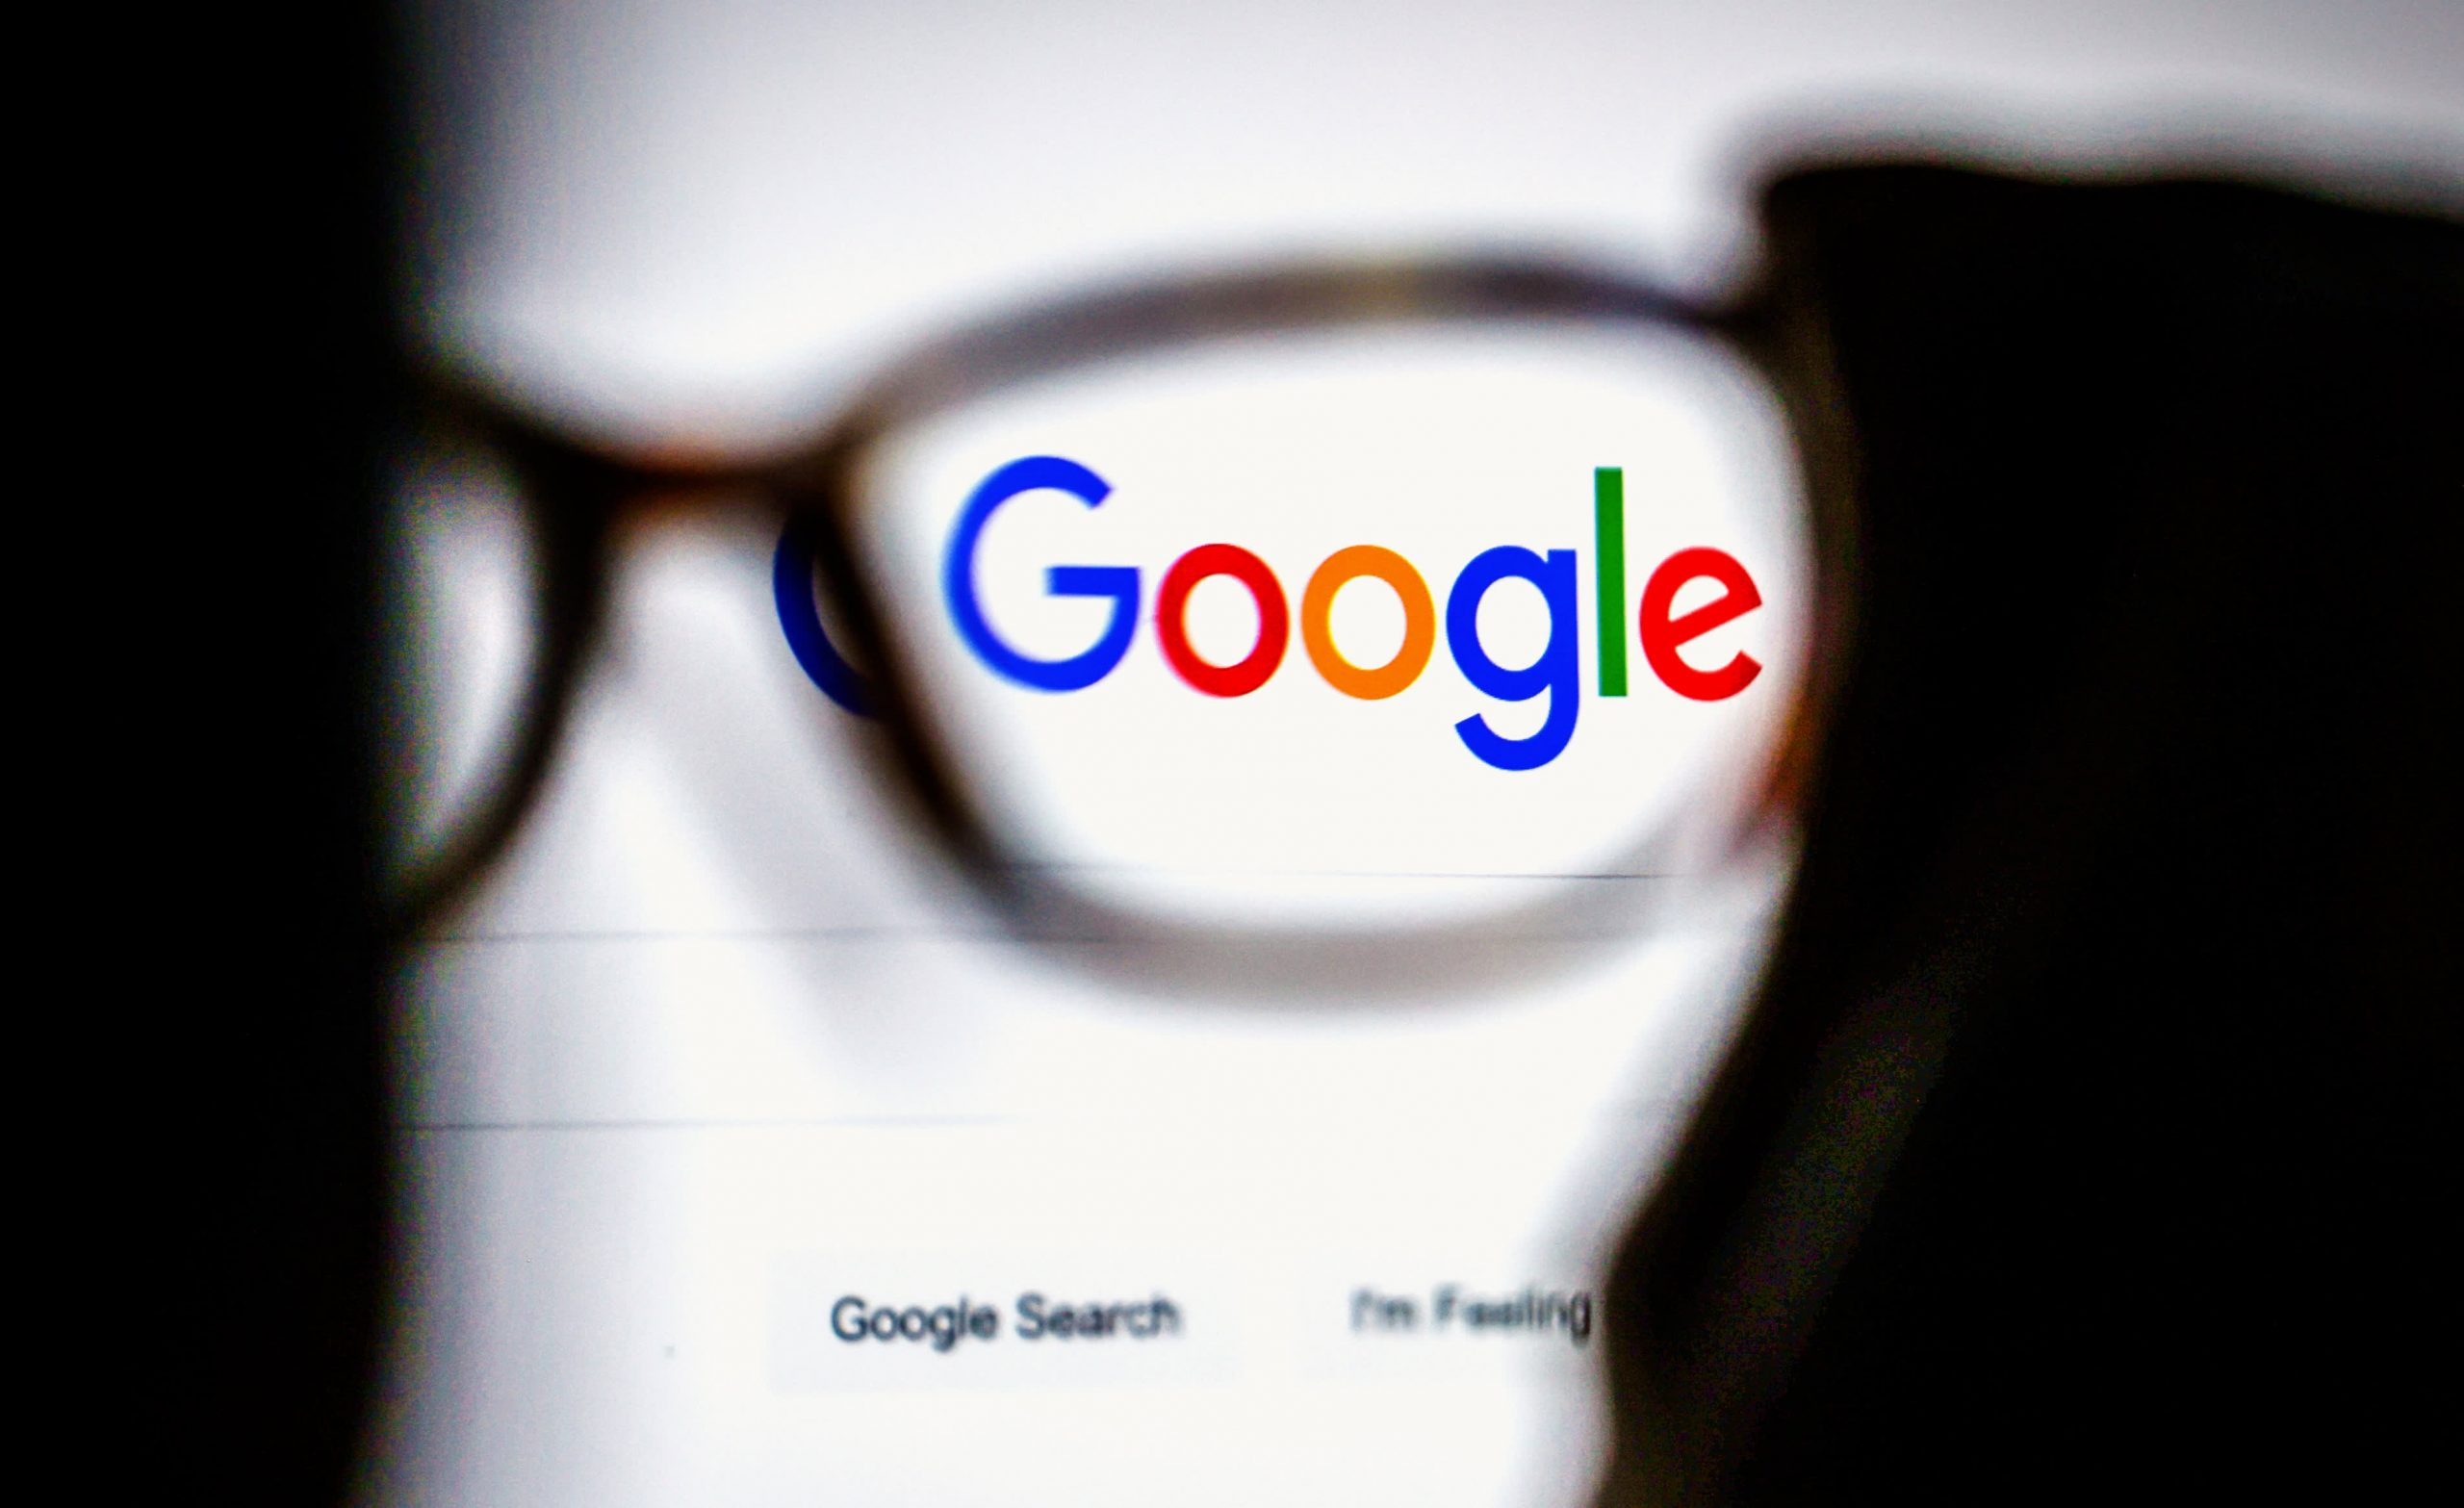 Russia threatens to slow down Google for failing to delete prohibited content, issues small fine